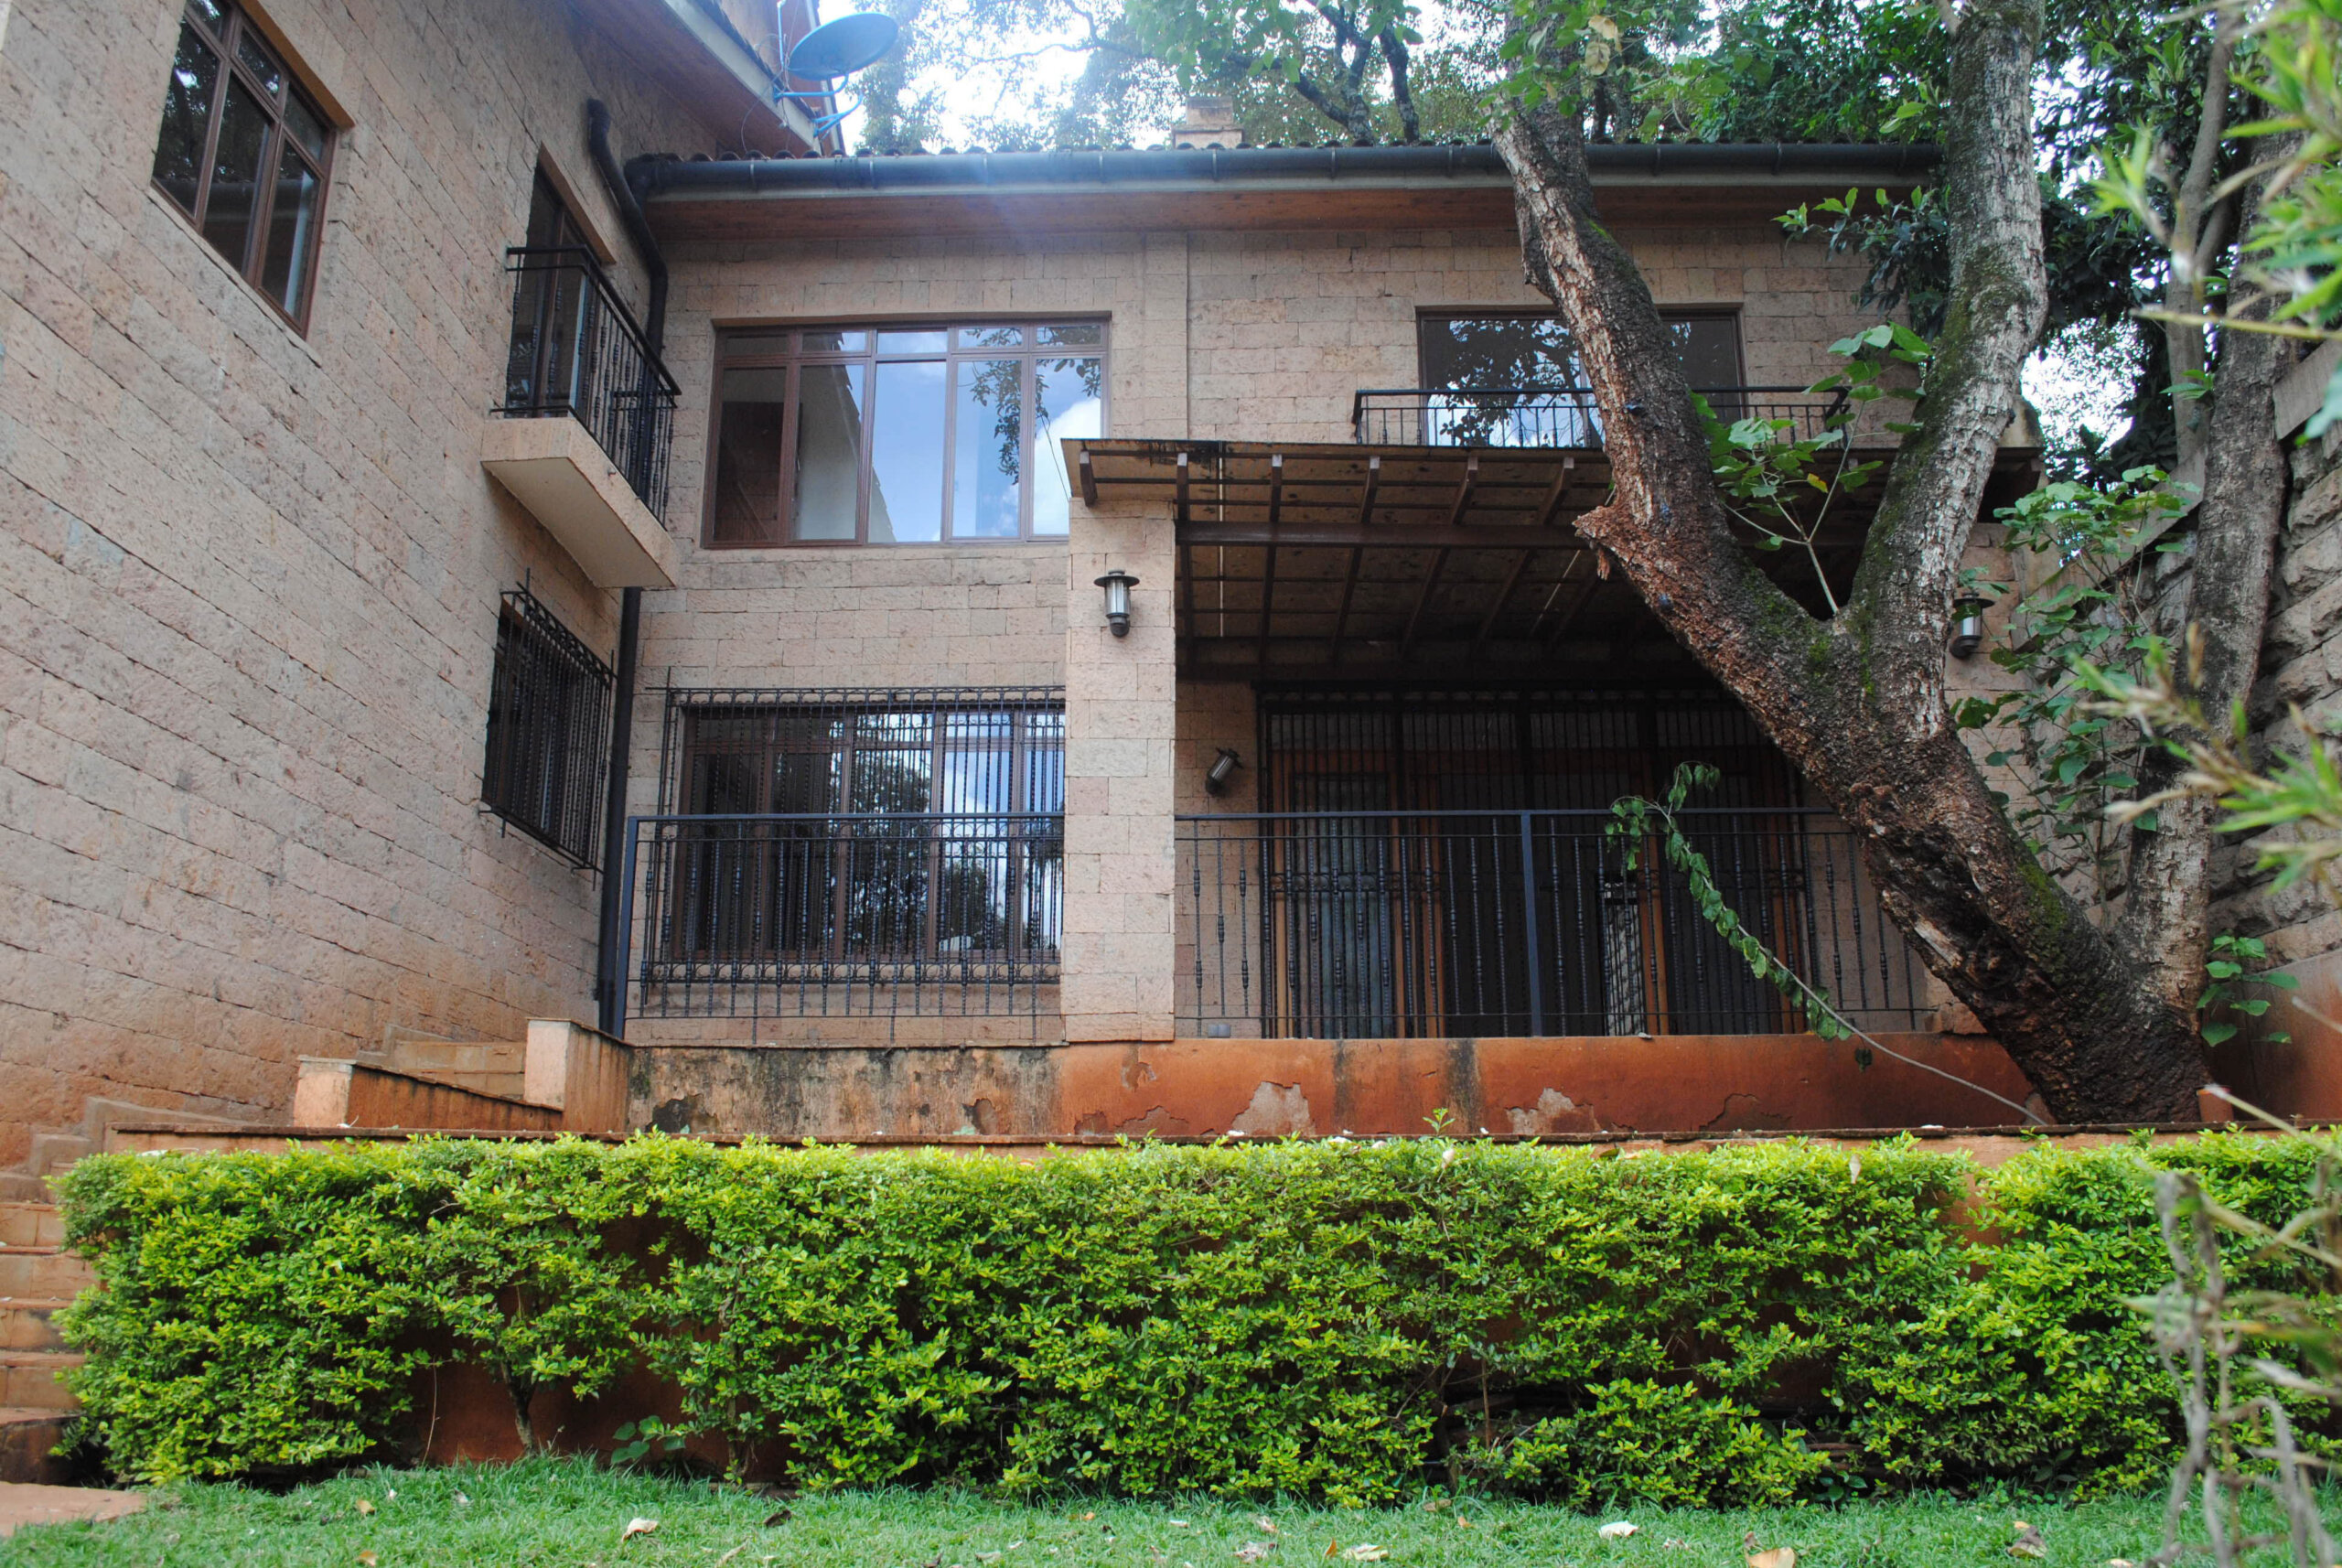 4 Bedroom Townhouse in a Gated Community in Lavington